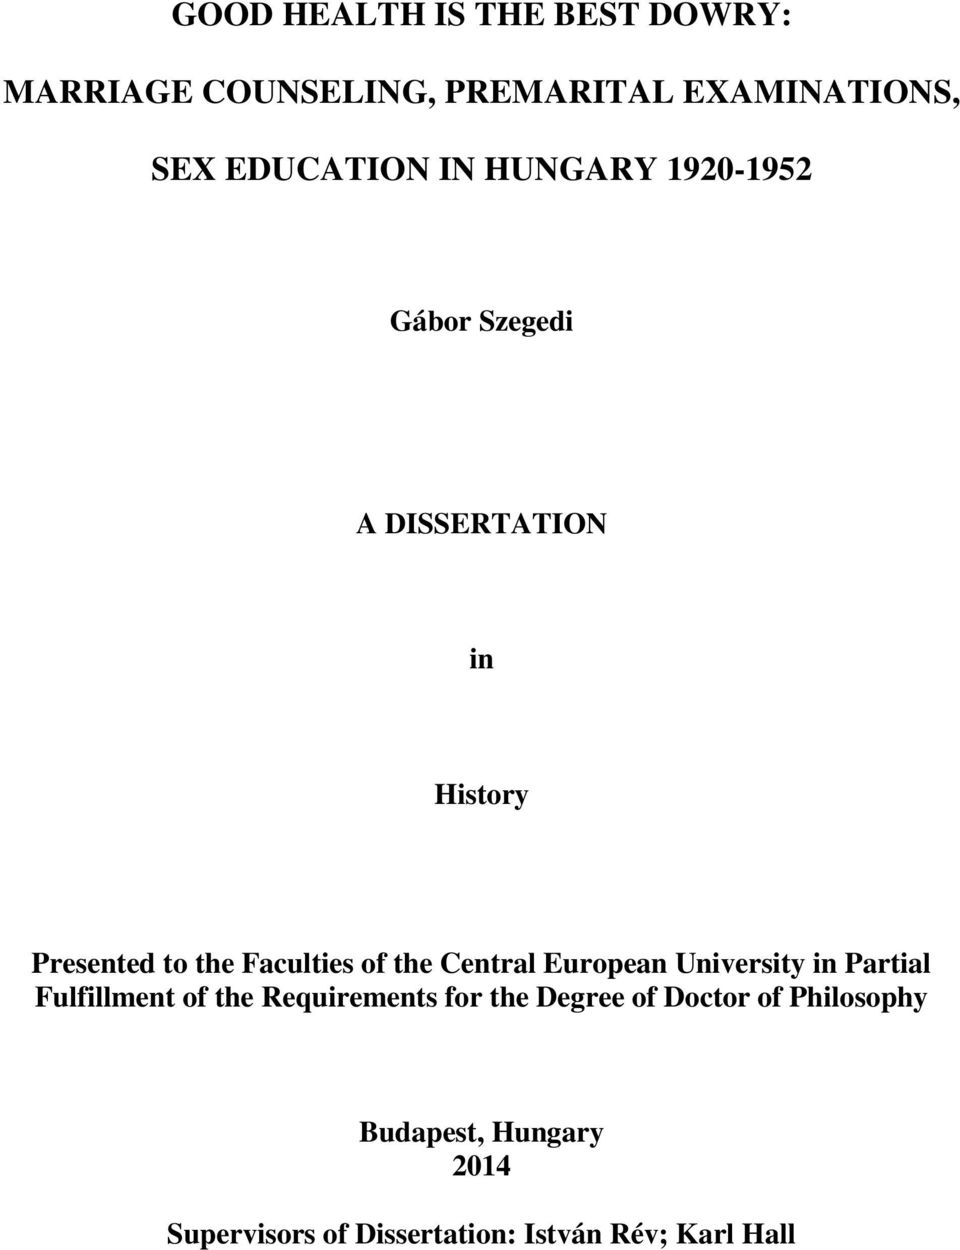 the Central European University in Partial Fulfillment of the Requirements for the Degree of